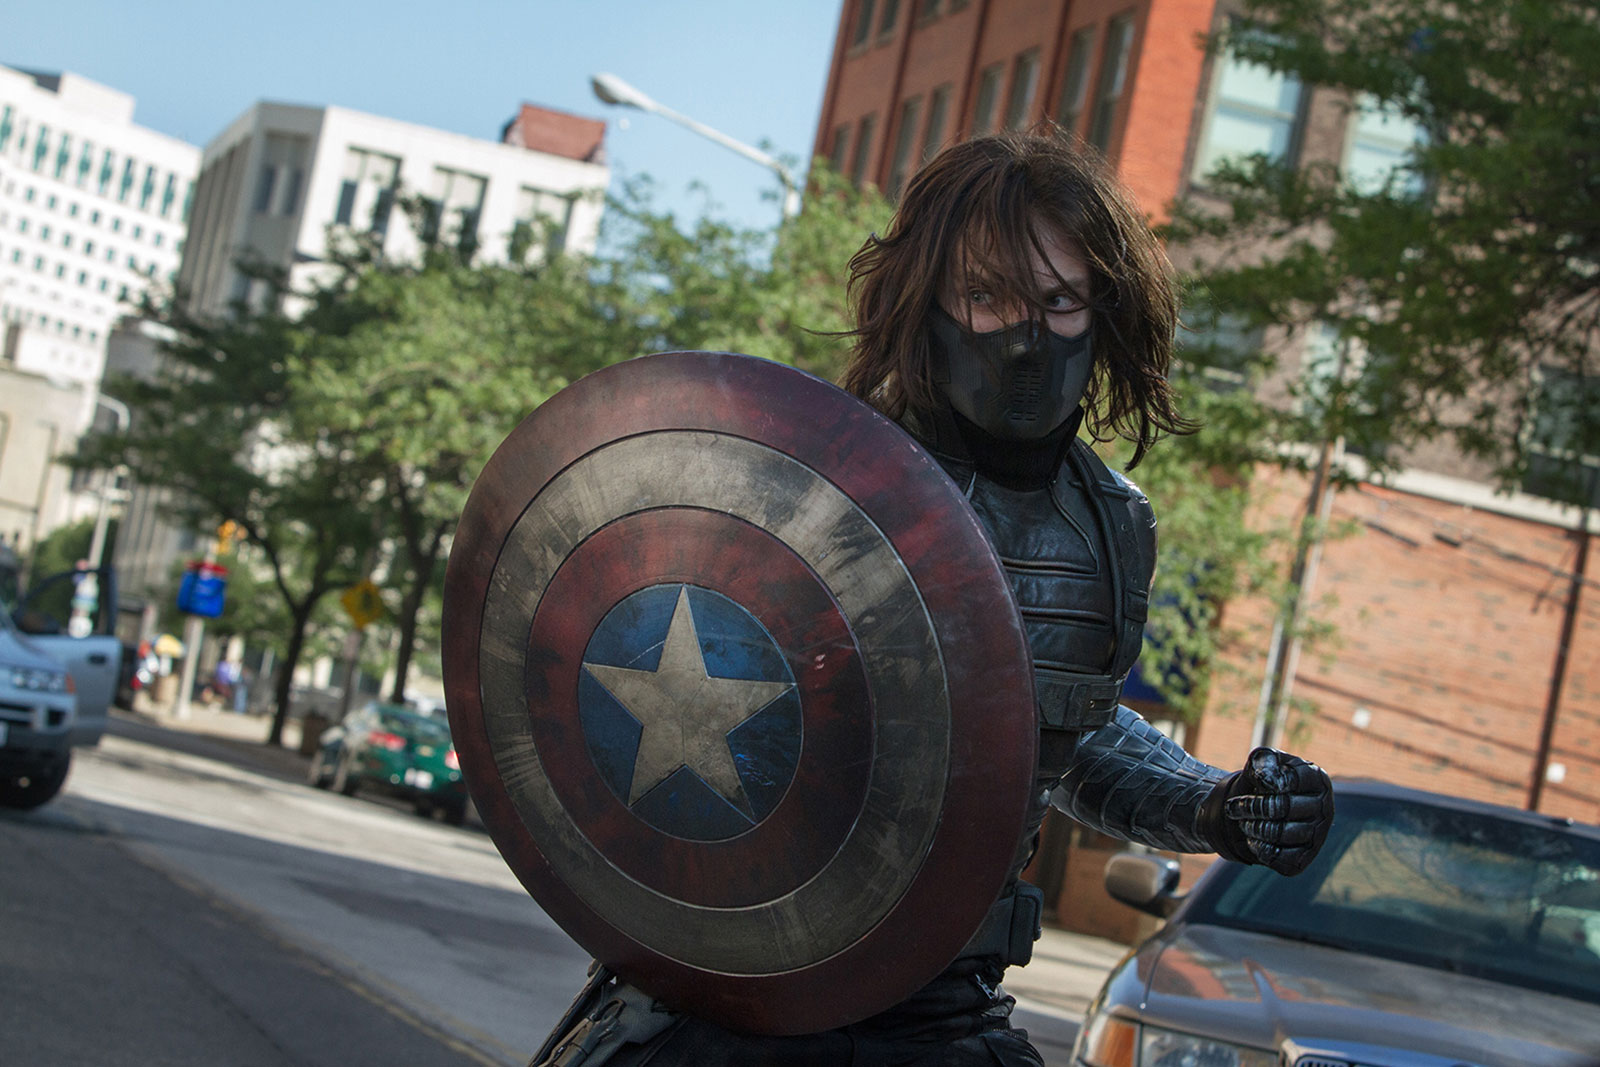 CAPTAIN AMERICA THE WINTER SOLDIER Wallpapers and Desktop Backgrounds 1600x1067